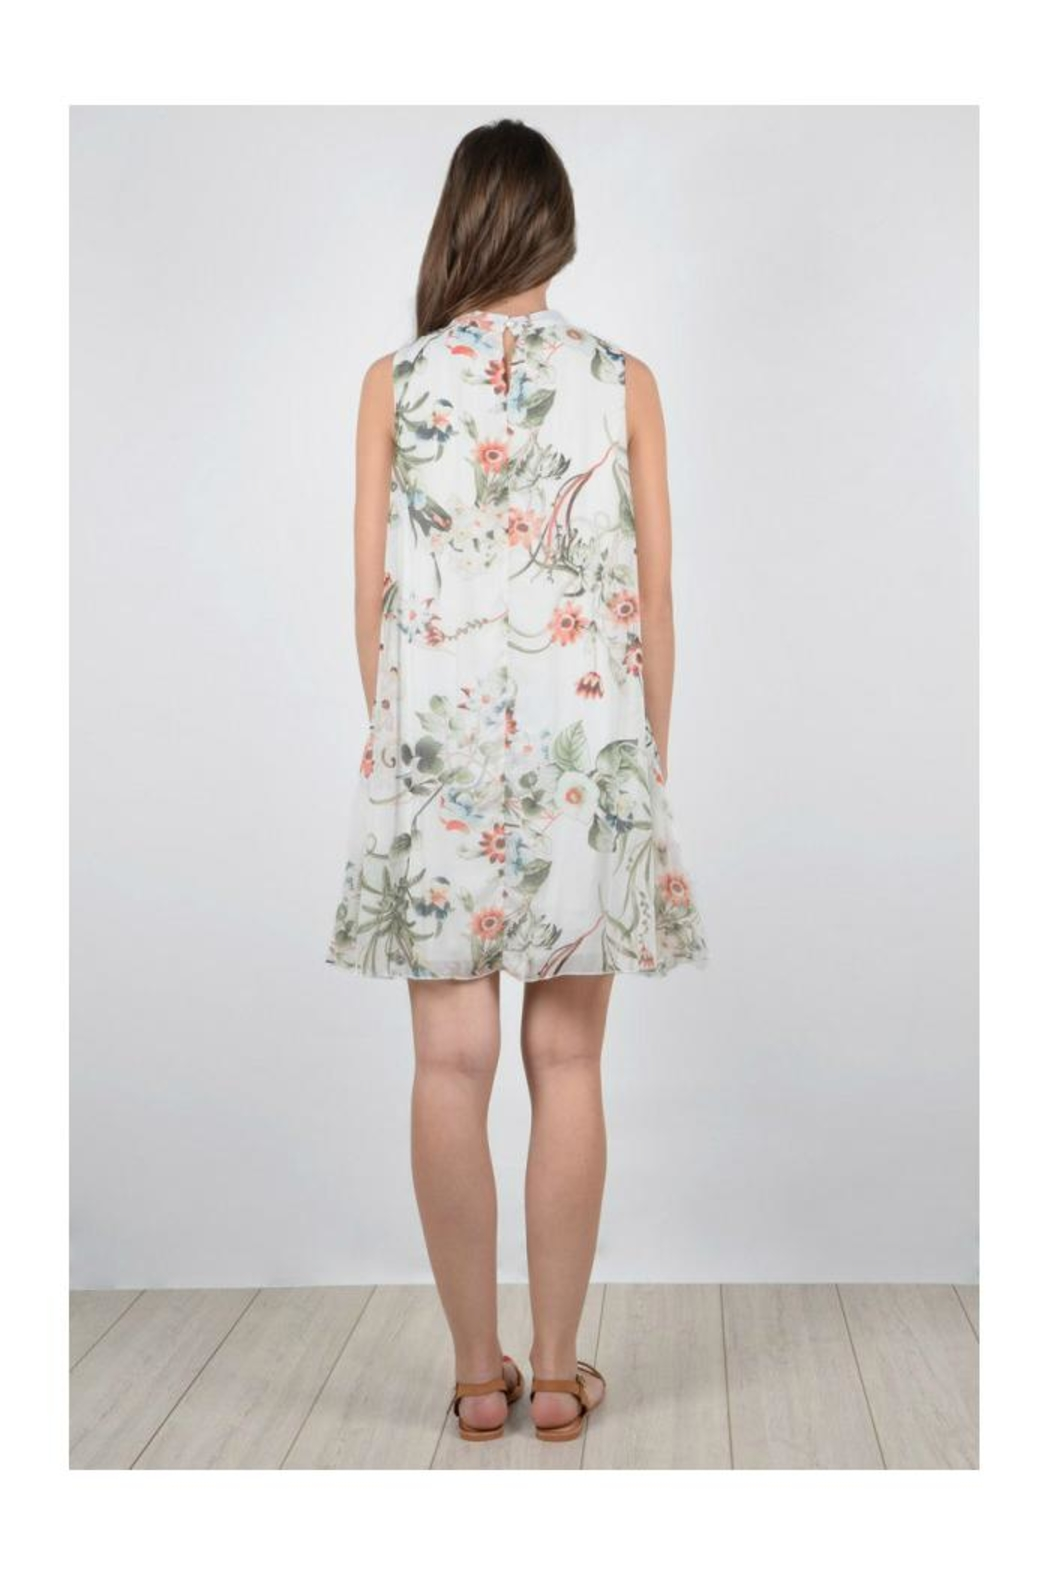 Molly Bracken Floral Sleeveless Dress - Back Cropped Image